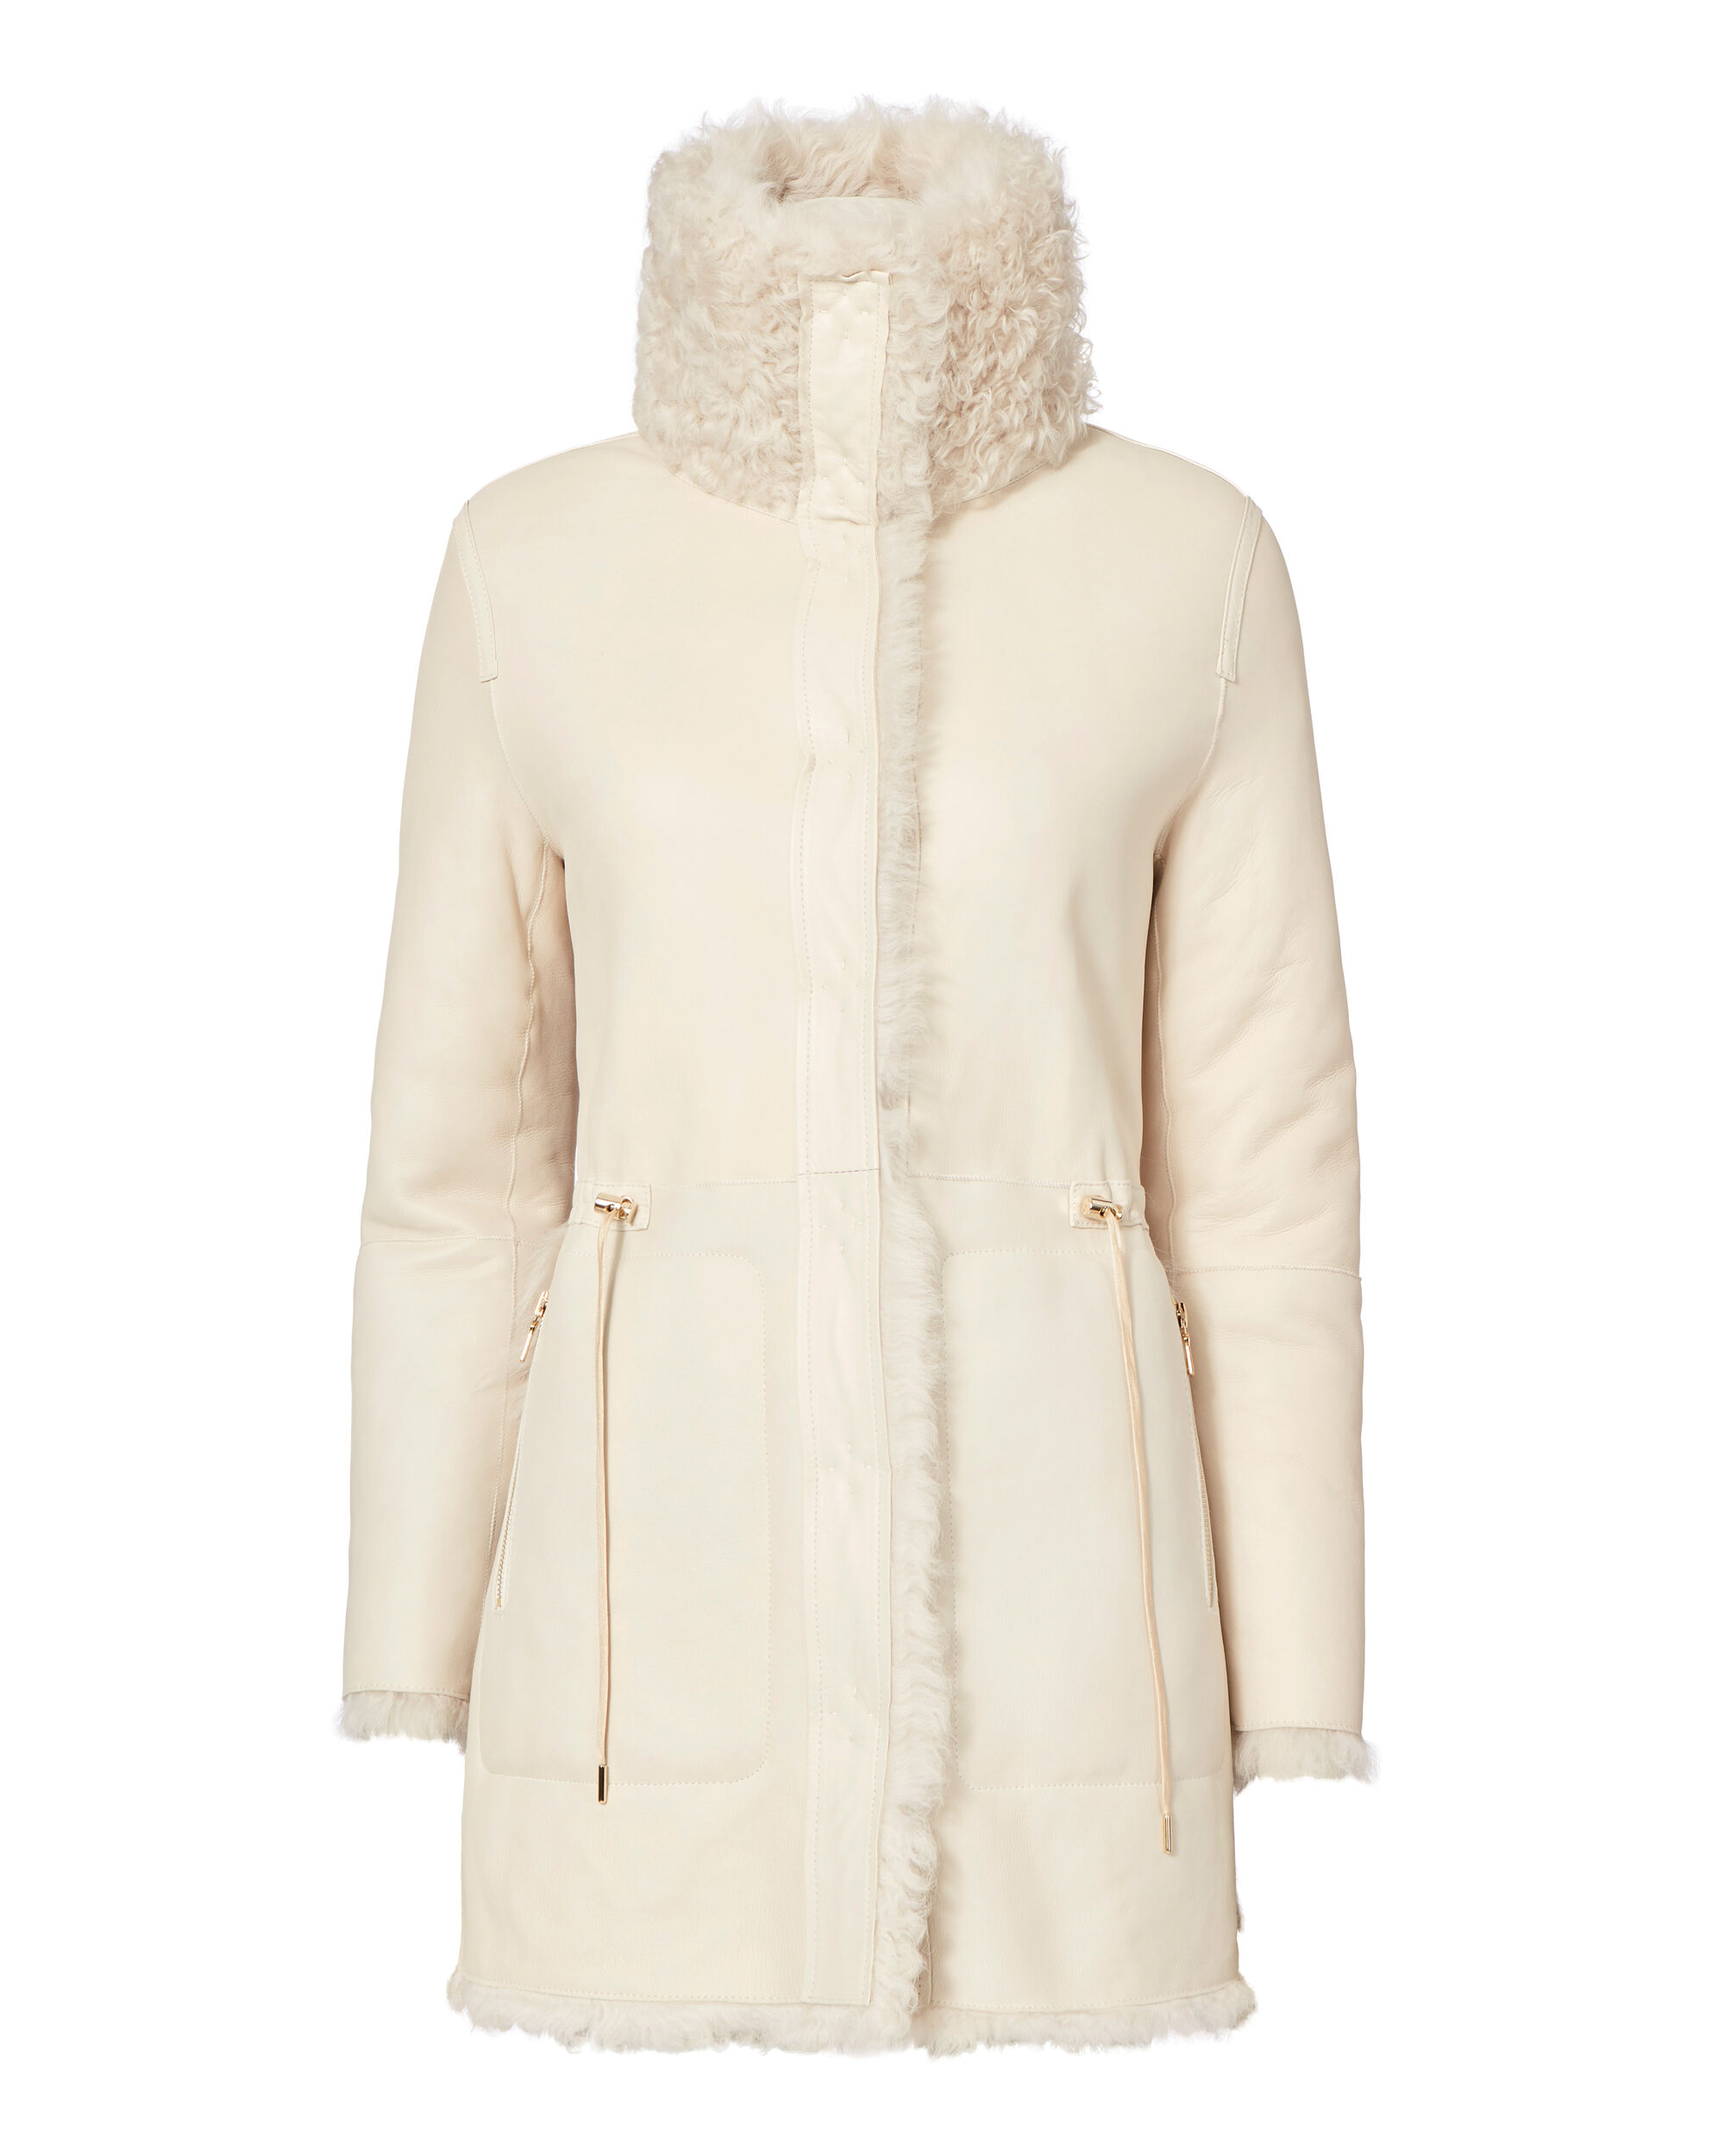 High Collar Reversible Shearling Jacket, IVORY, hi-res